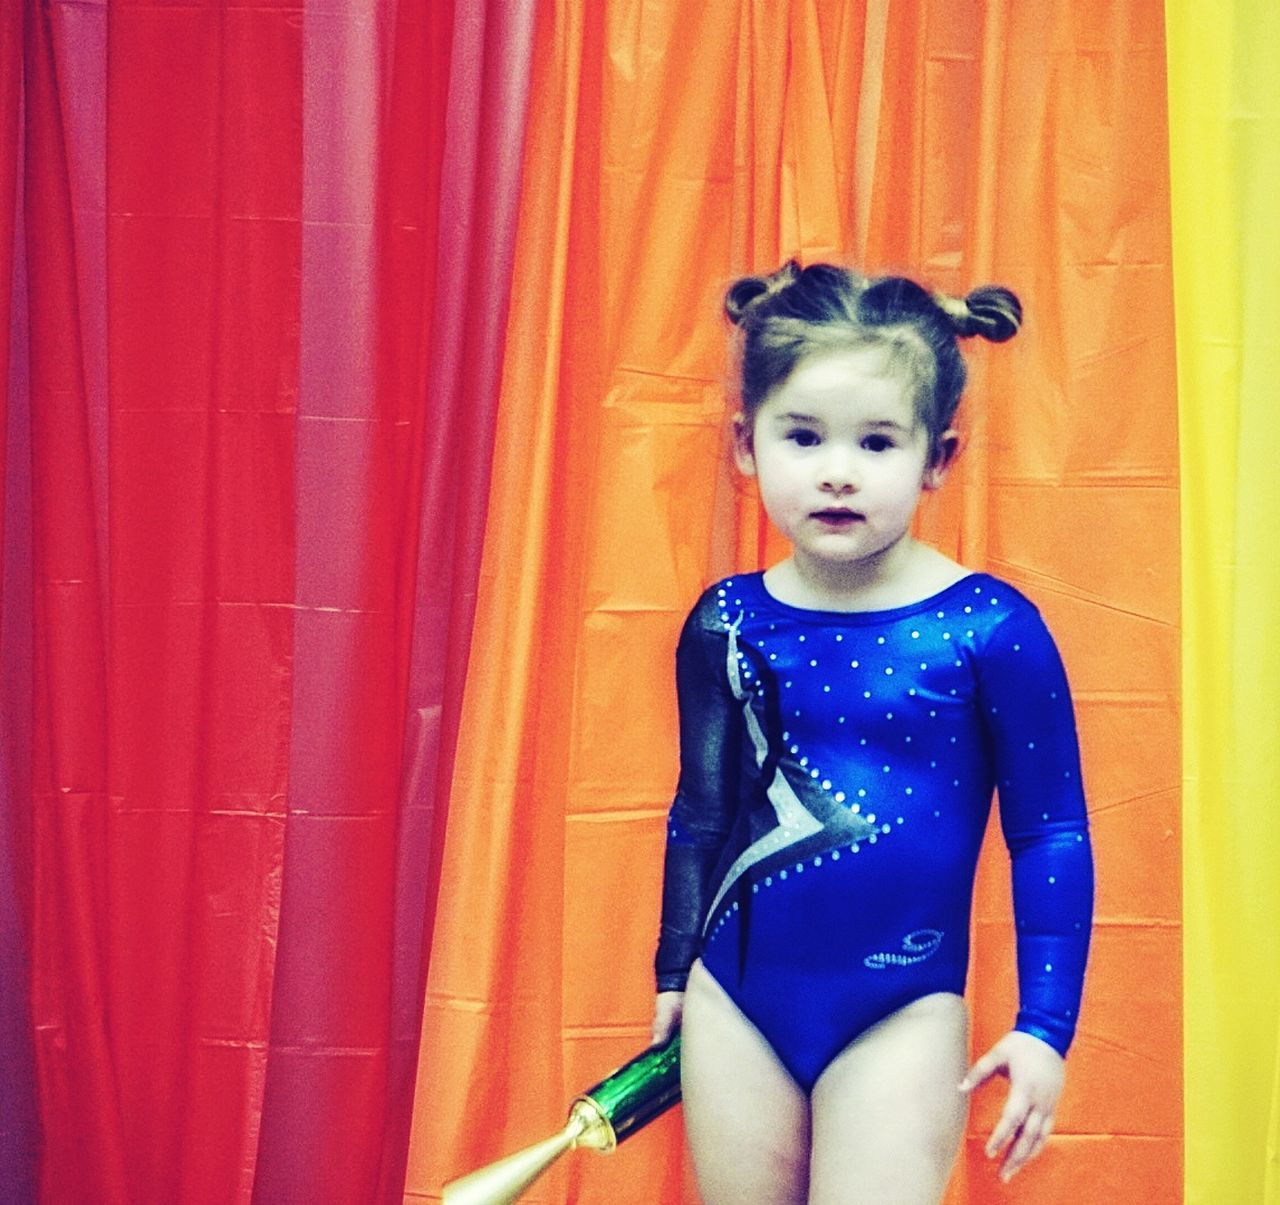 Young tumbler Girl Trophy Leotard Days ❤ Sweetie Competing